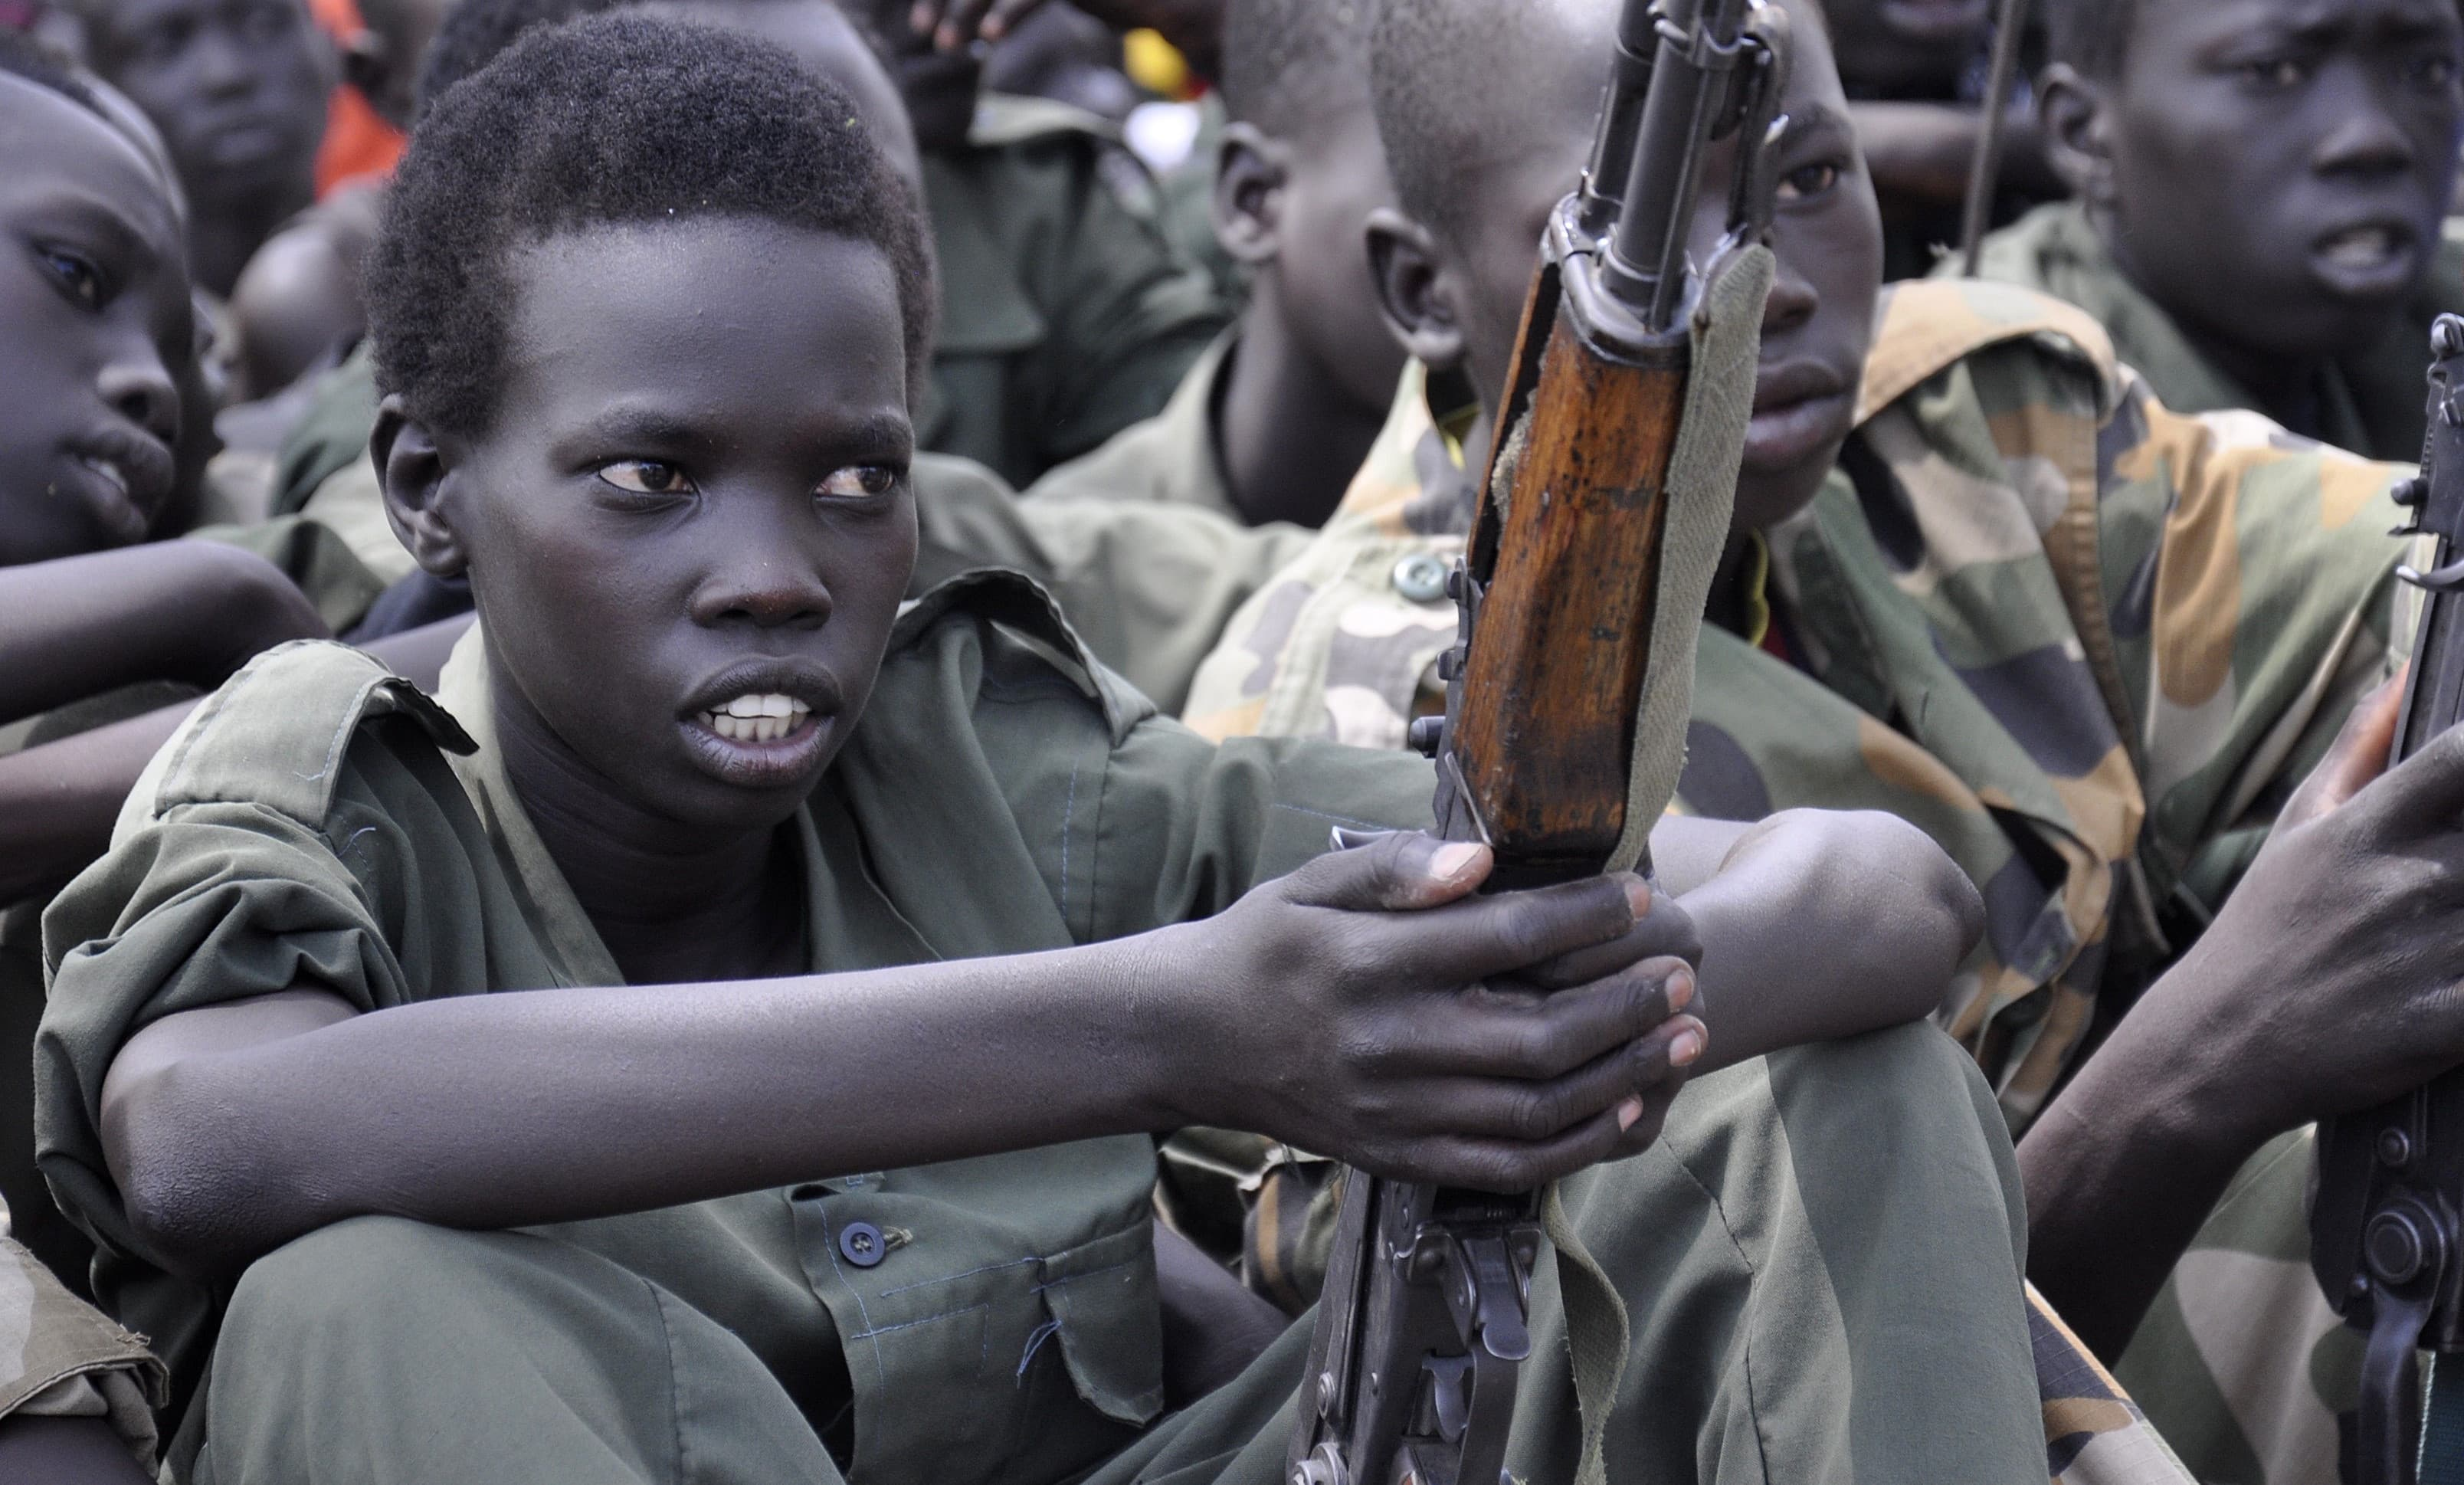 Child soldiers released in South Sudan, 2015 (Photo: Samir Bol/Getty)